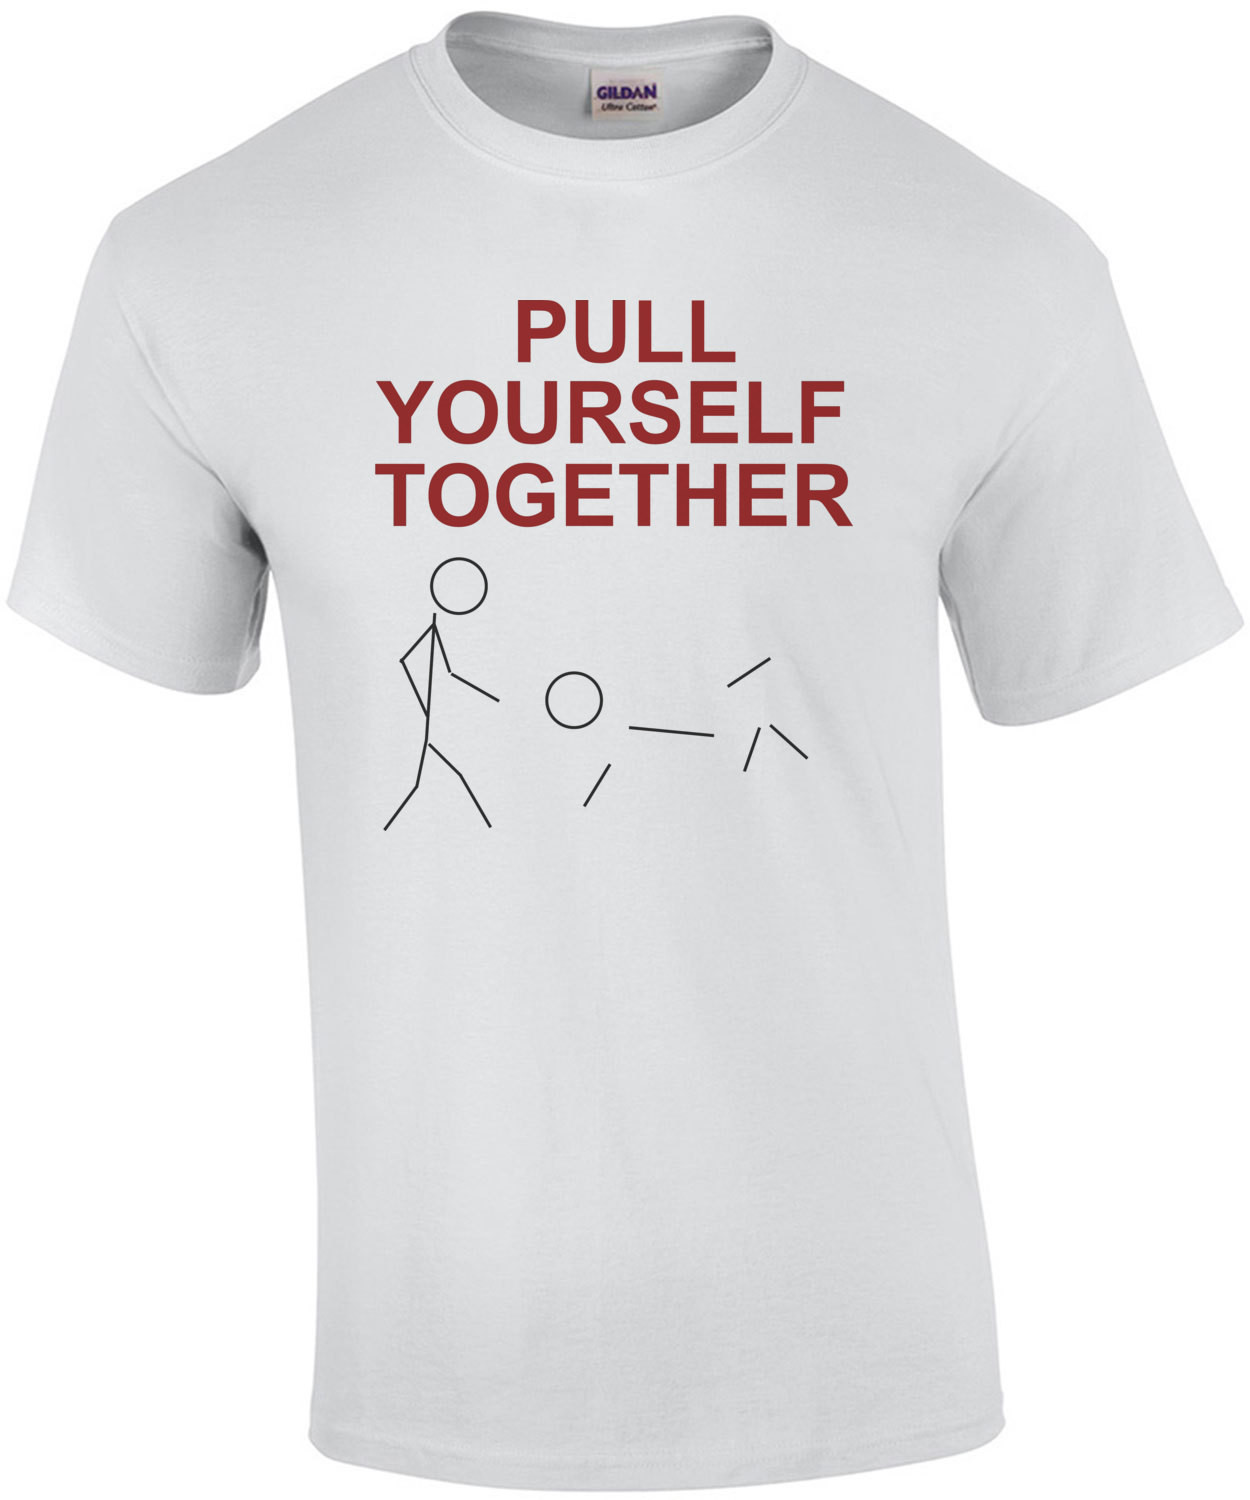 Pull Yourself Together - Funny Stick Figure T-Shirt